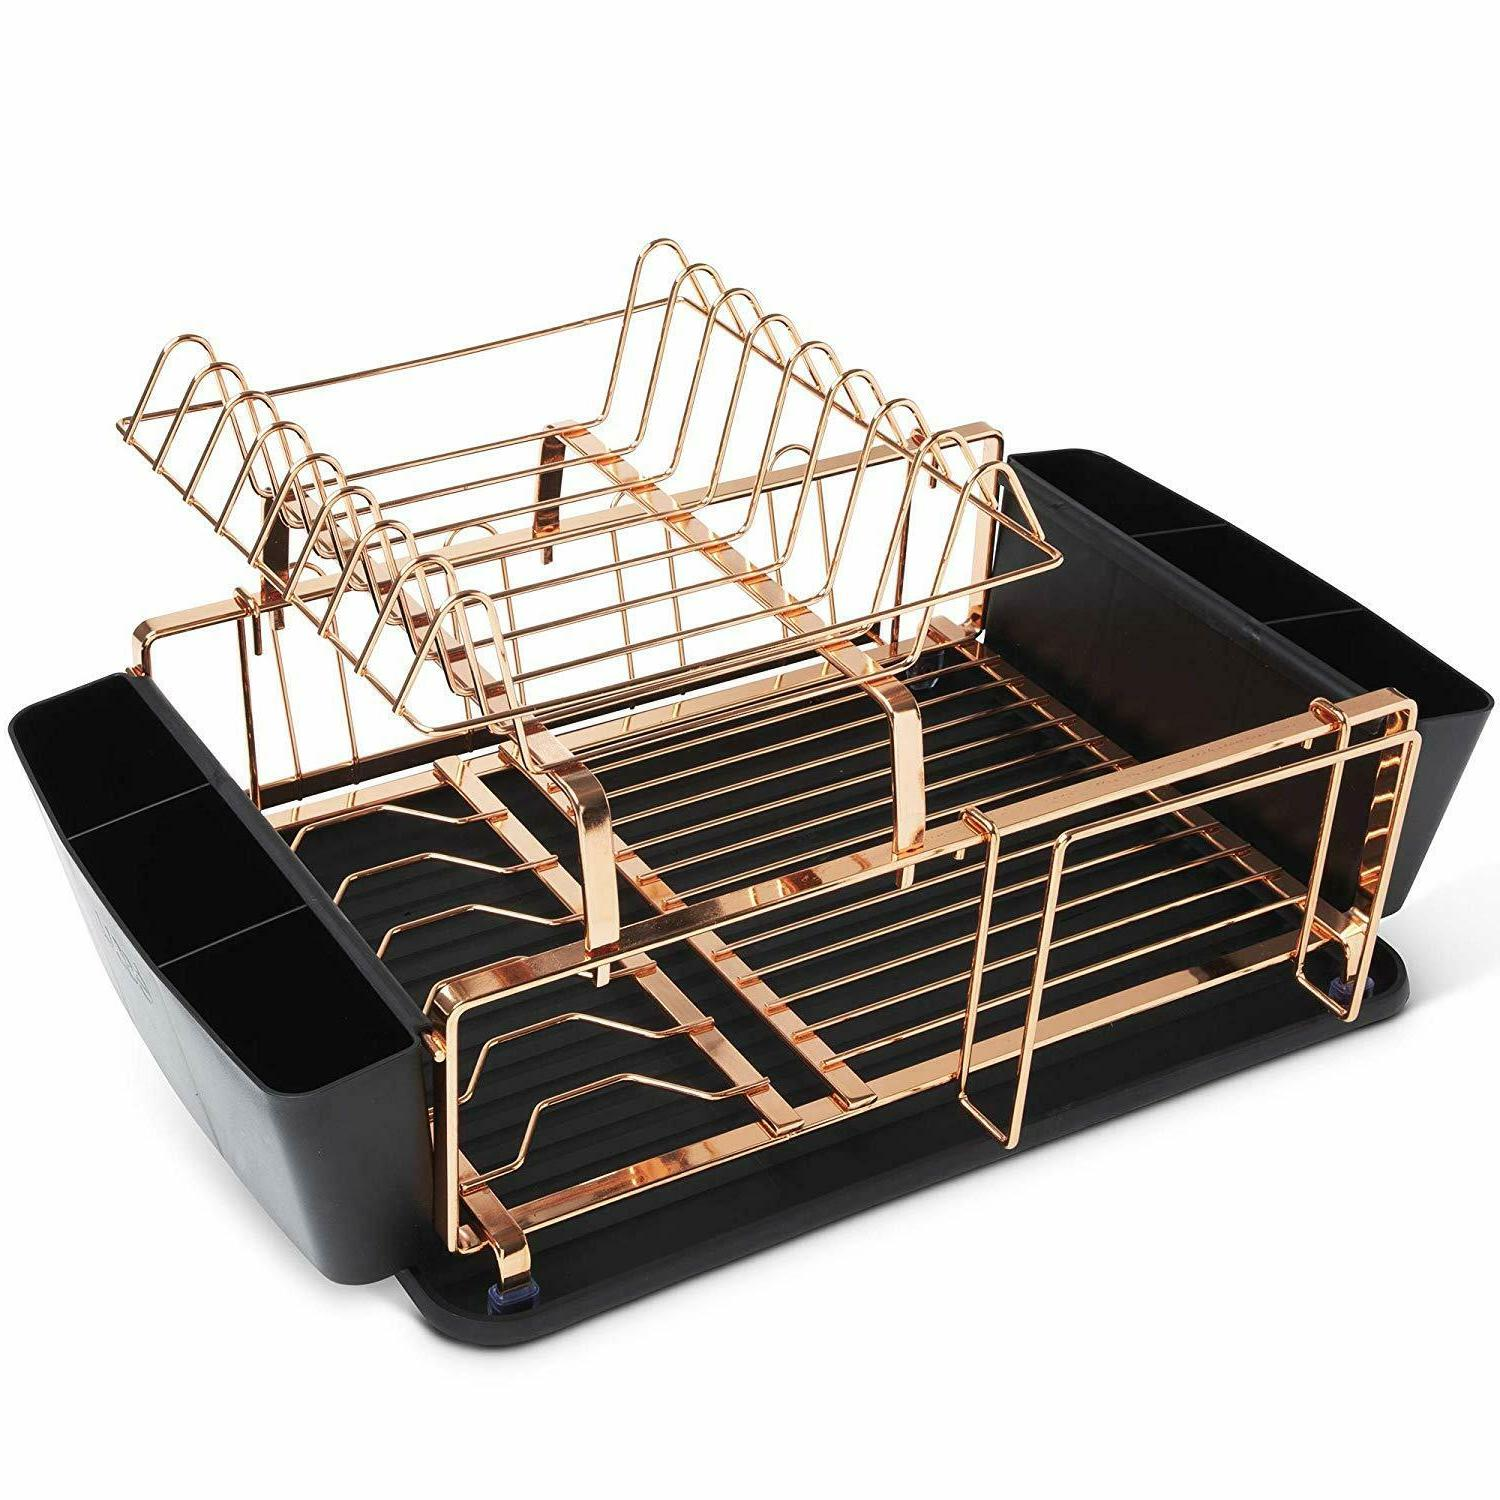 copper drying rack dish holder and drainboard